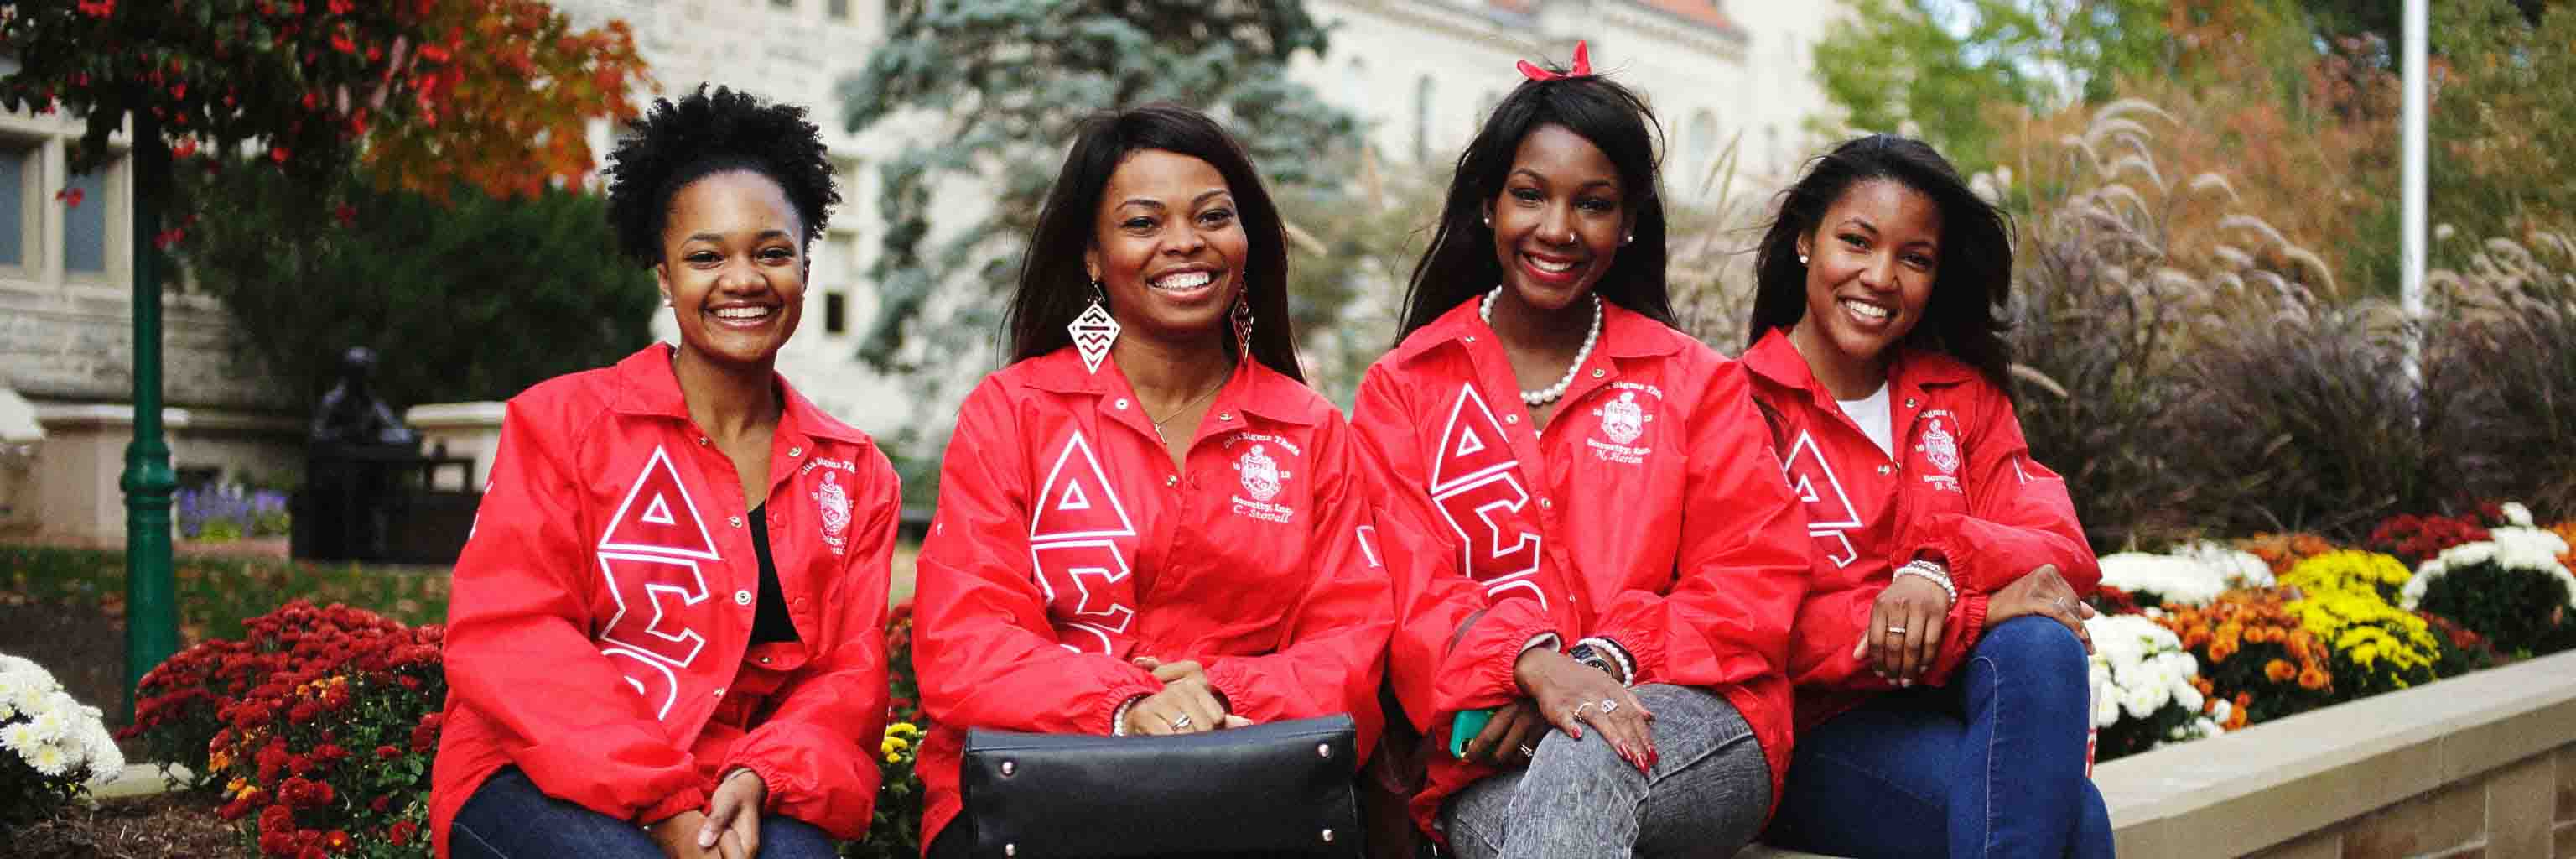 Four African American women in sorority jackets sit smiling on a bench.